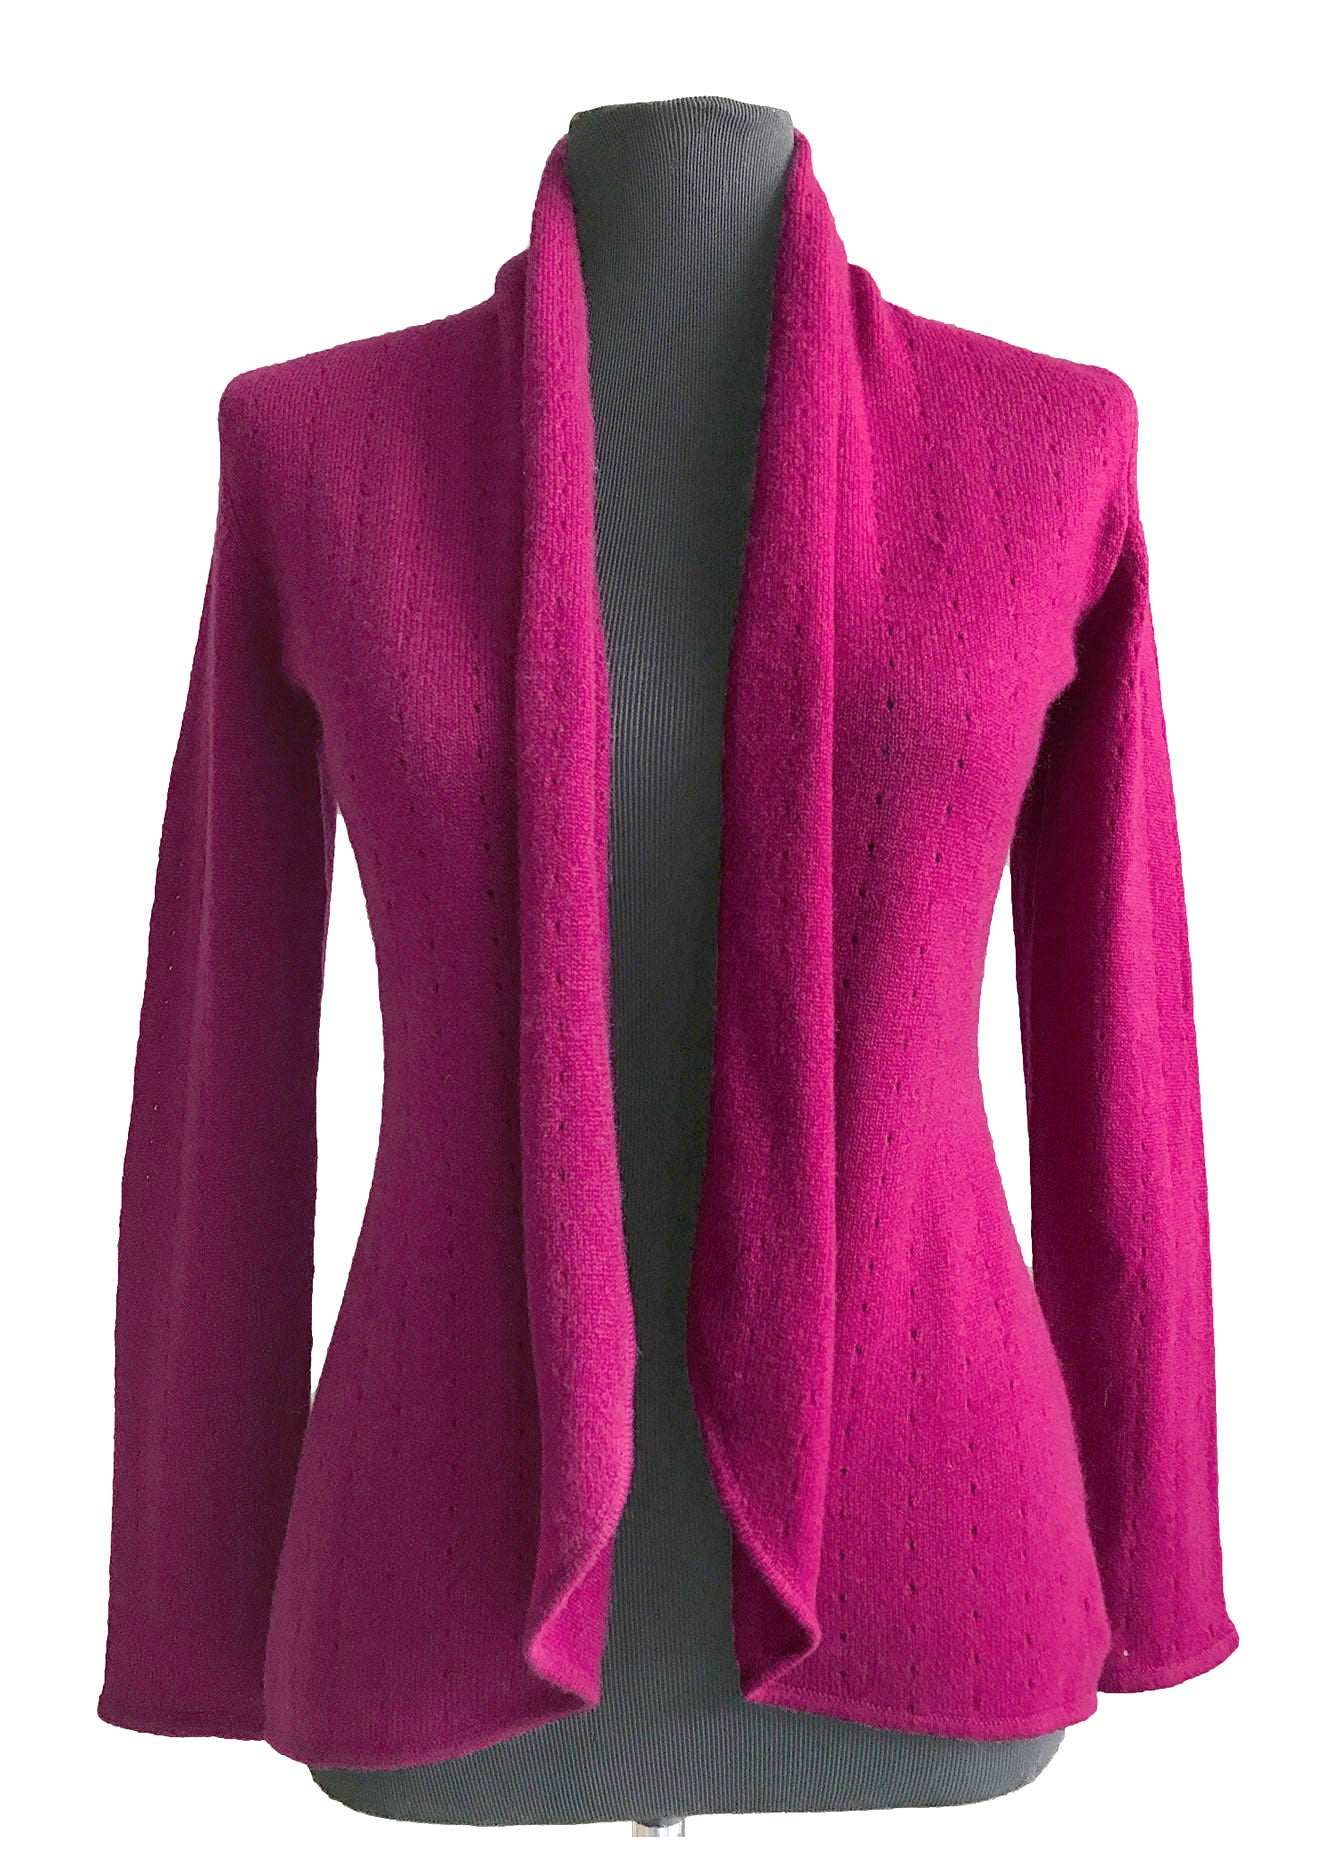 Cherry pink women's luxury Cashmere cardigan jacket, cherry red ladies light weight summer cardigan, open front tailored jacket, fitted shawl neck collared elegant cardigan sale, open V-neck sweater knit London UK | SEMON Cashmere